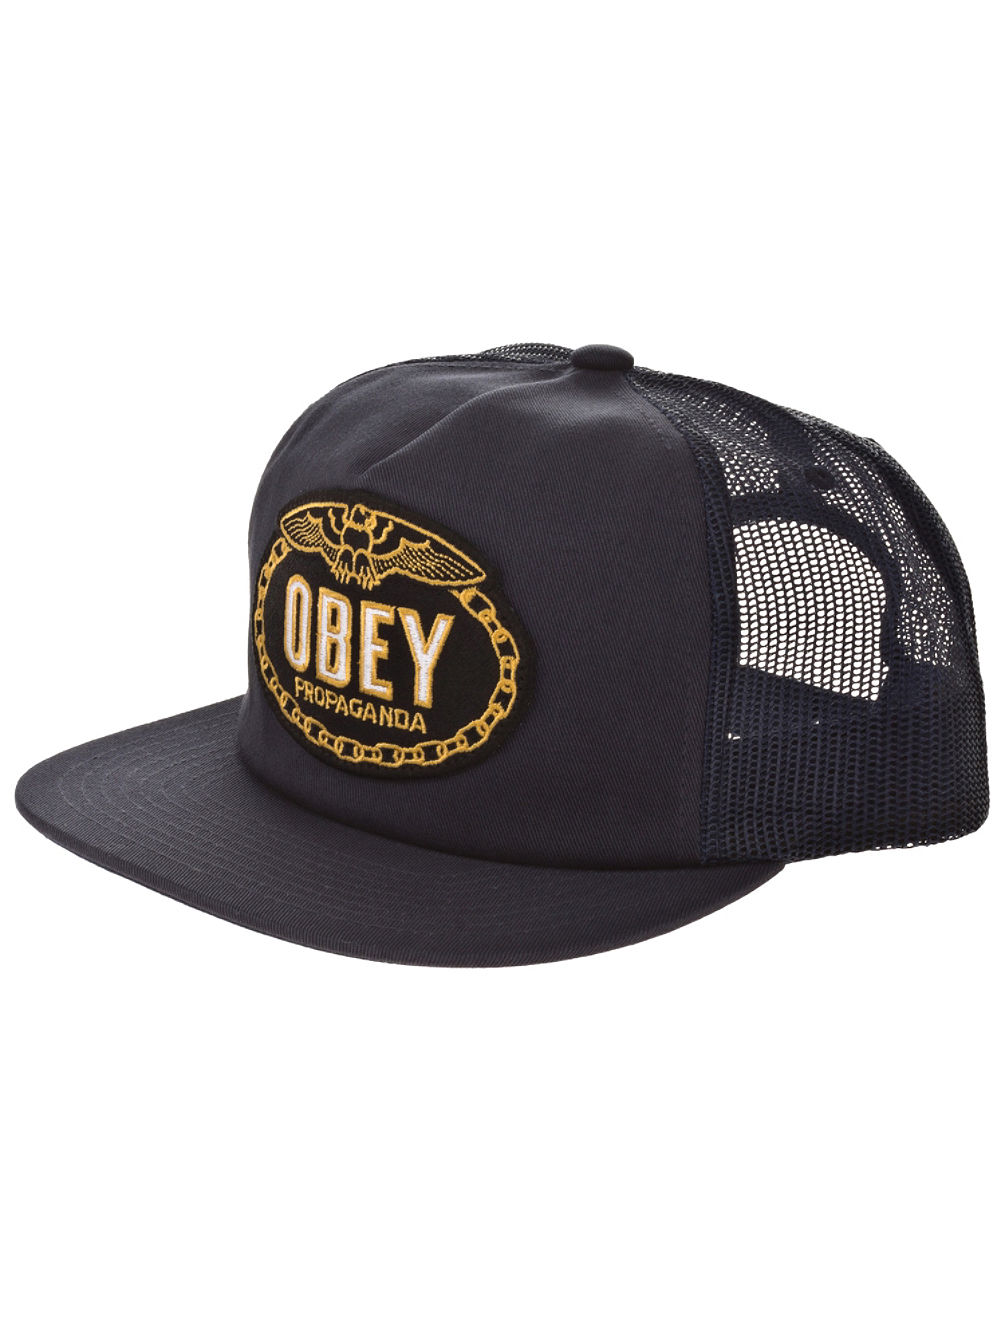 a987cef4e86 Buy Obey Chains Trucker Cap online at blue-tomato.com